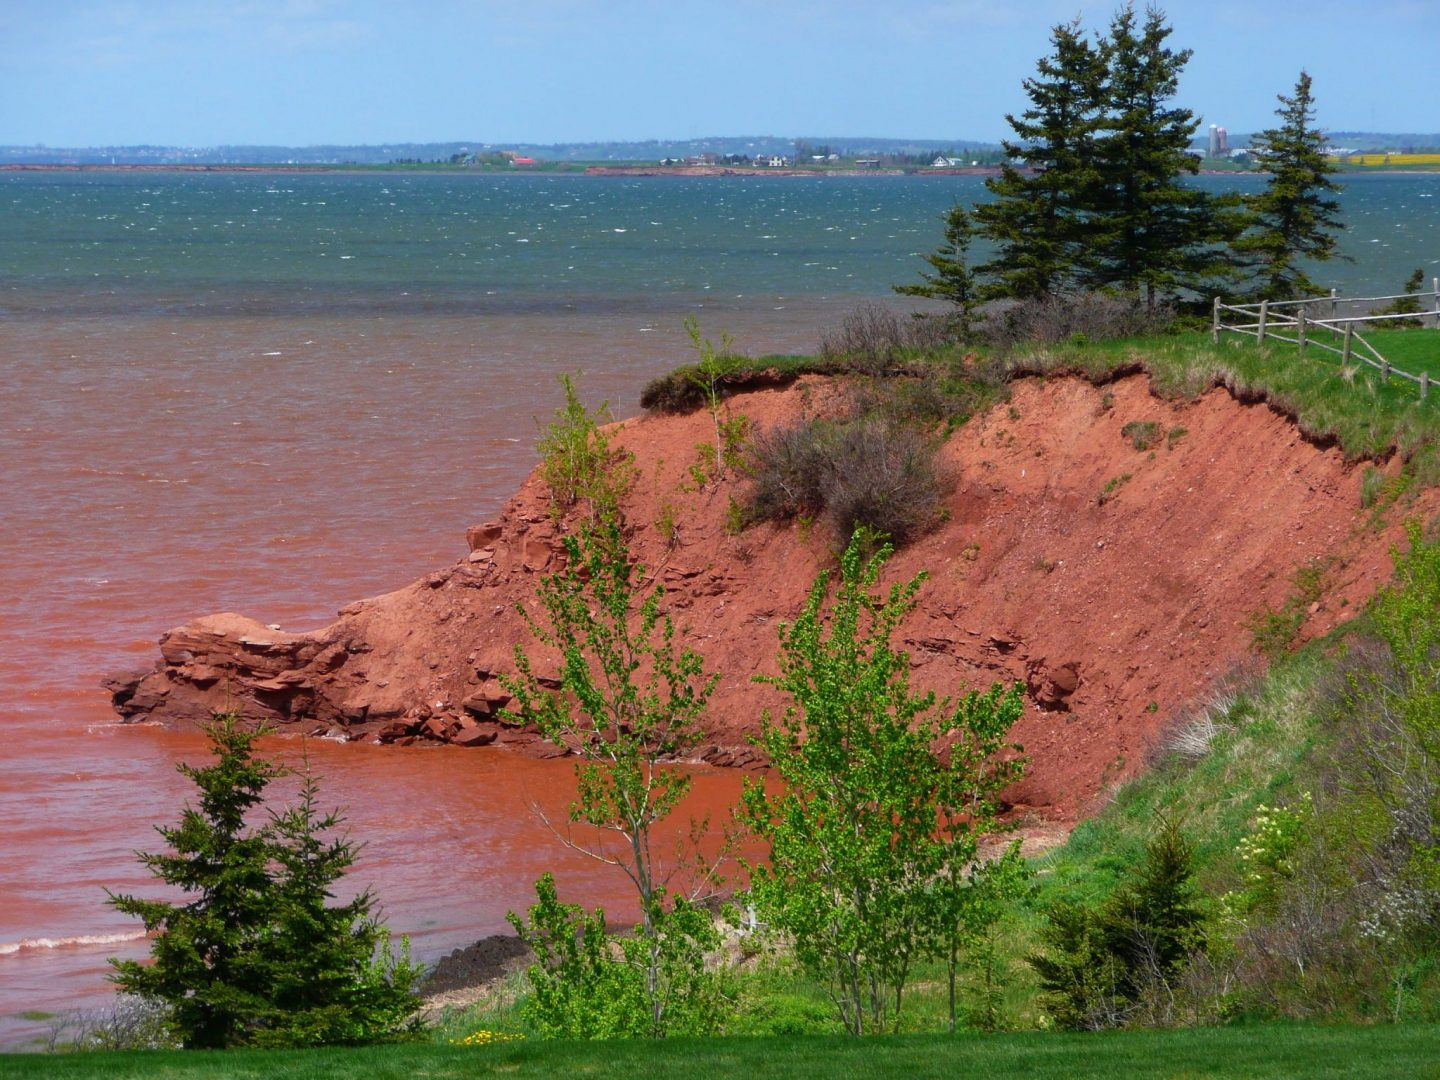 SOIL EROSION: CAUSES, CHALLENGES AND SOLUTIONS